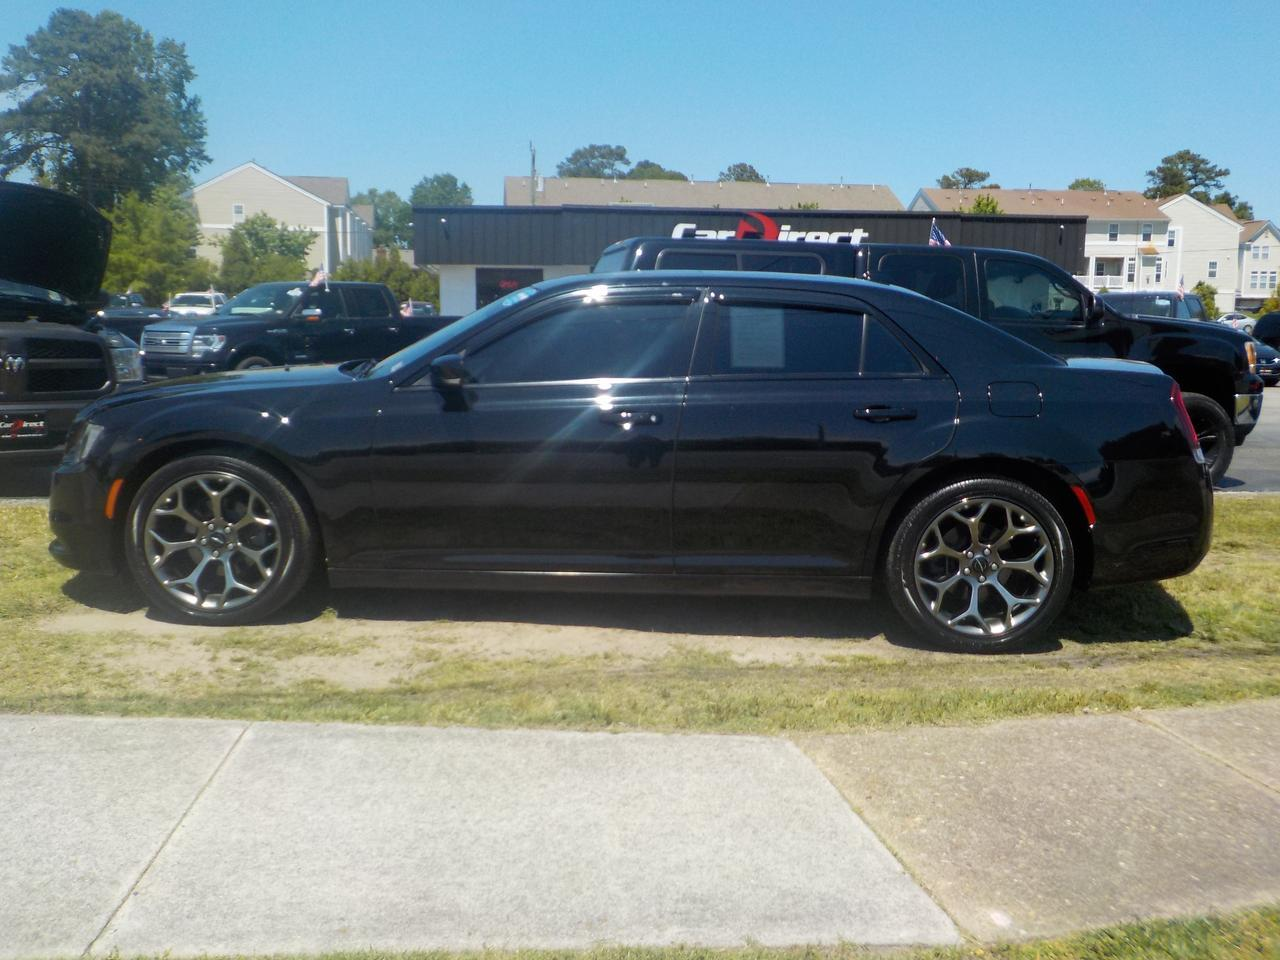 2015 CHRYSLER 300 S, NAVIGATION, PARKING SENSORS, SUNROOF, REMOTE START, BLUETOOTH, UCONNECT! Virginia Beach VA